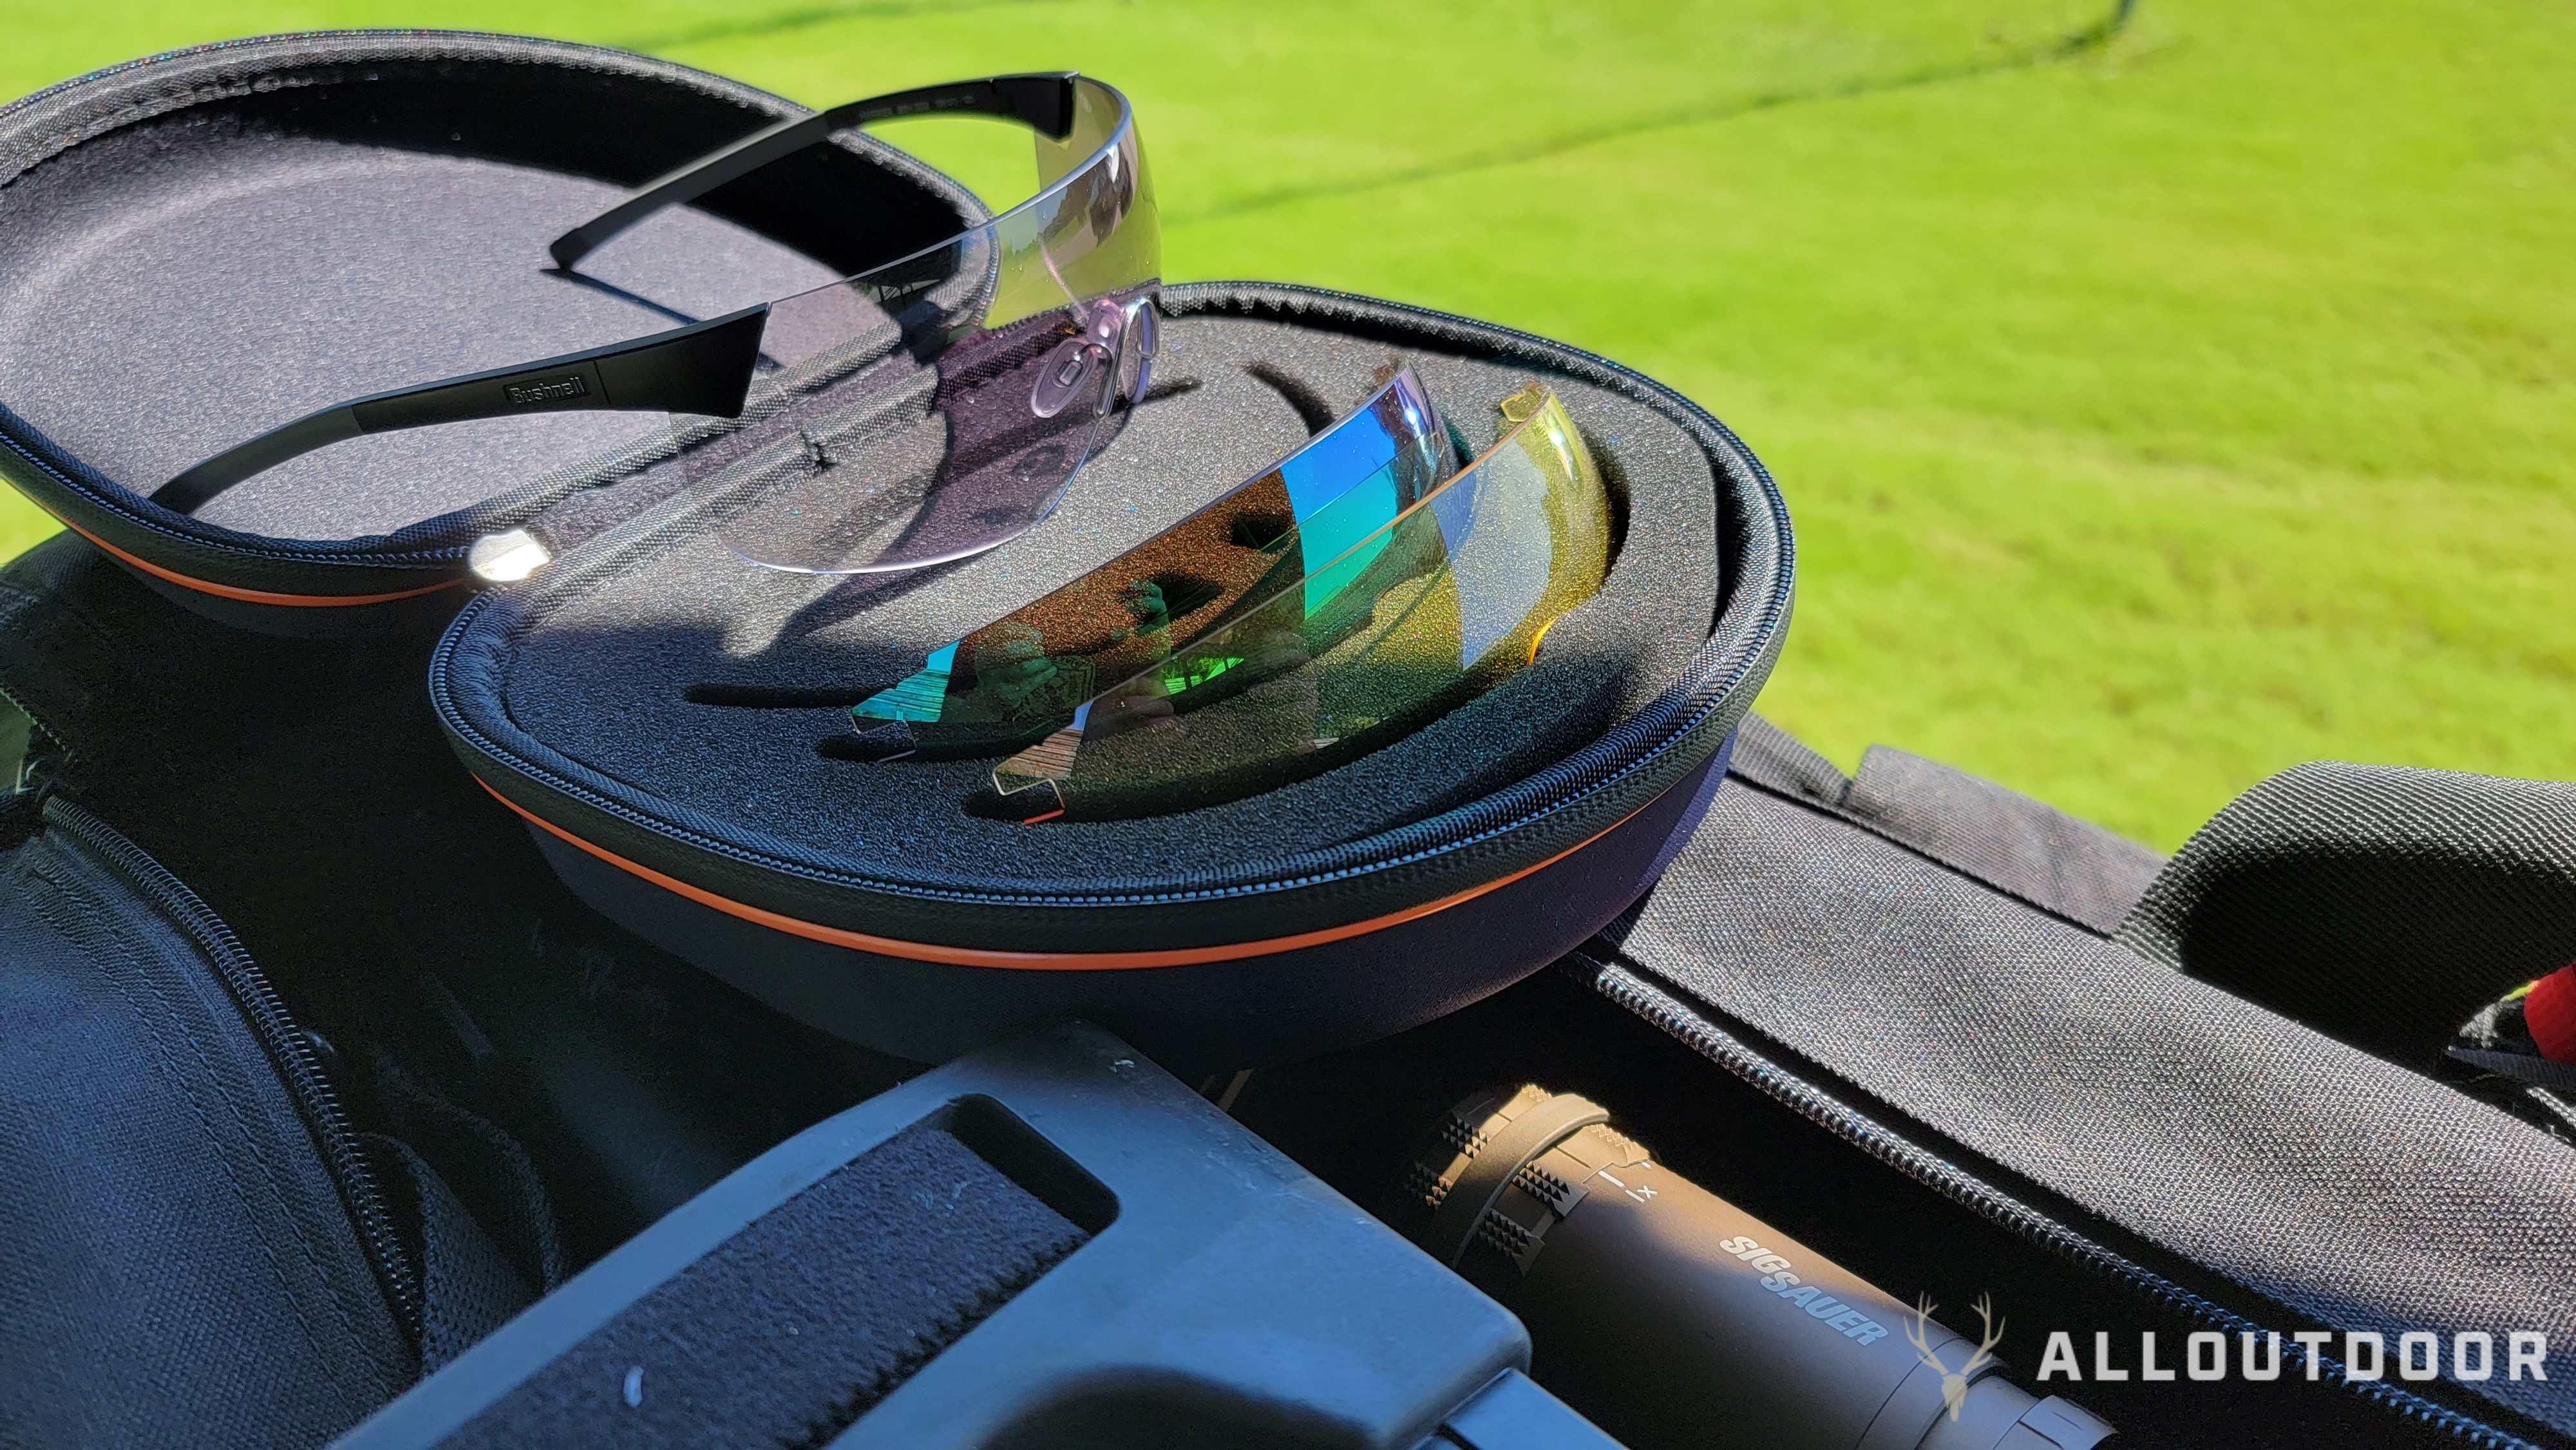 AllOutdoor Review: Bushnell's New Harrier Eye Protection